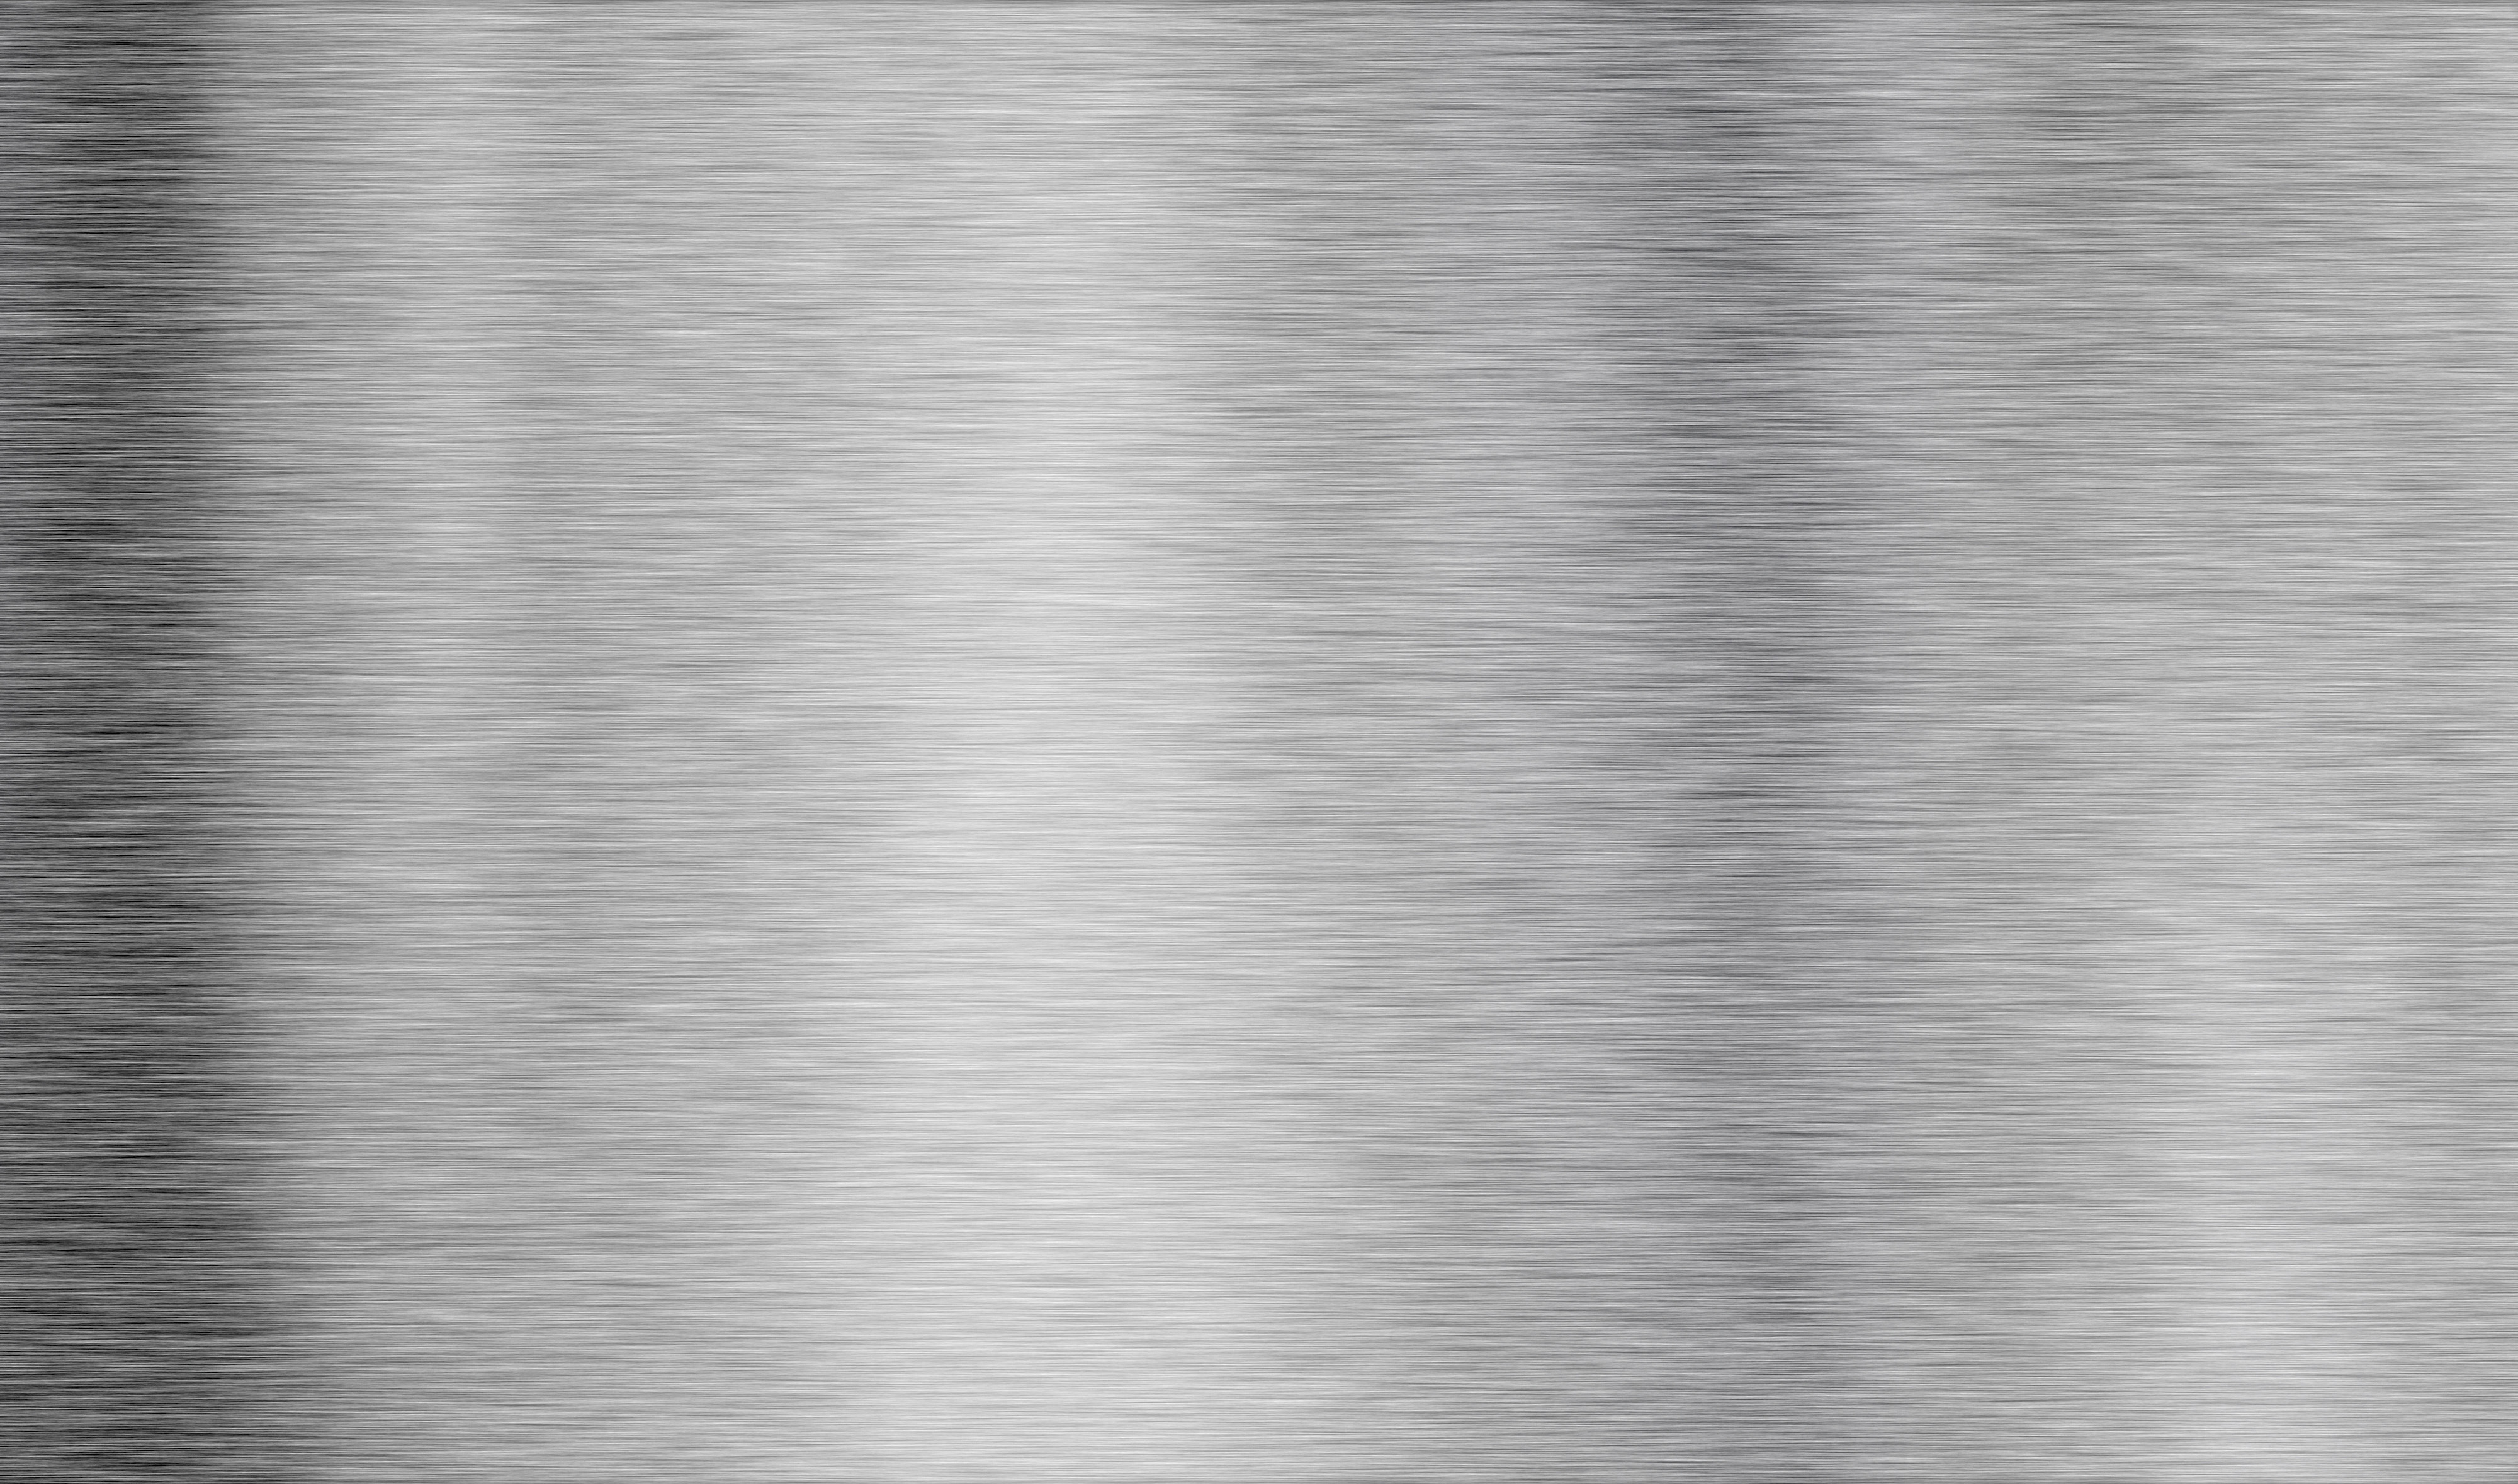 Images of Metal | 4000x2358